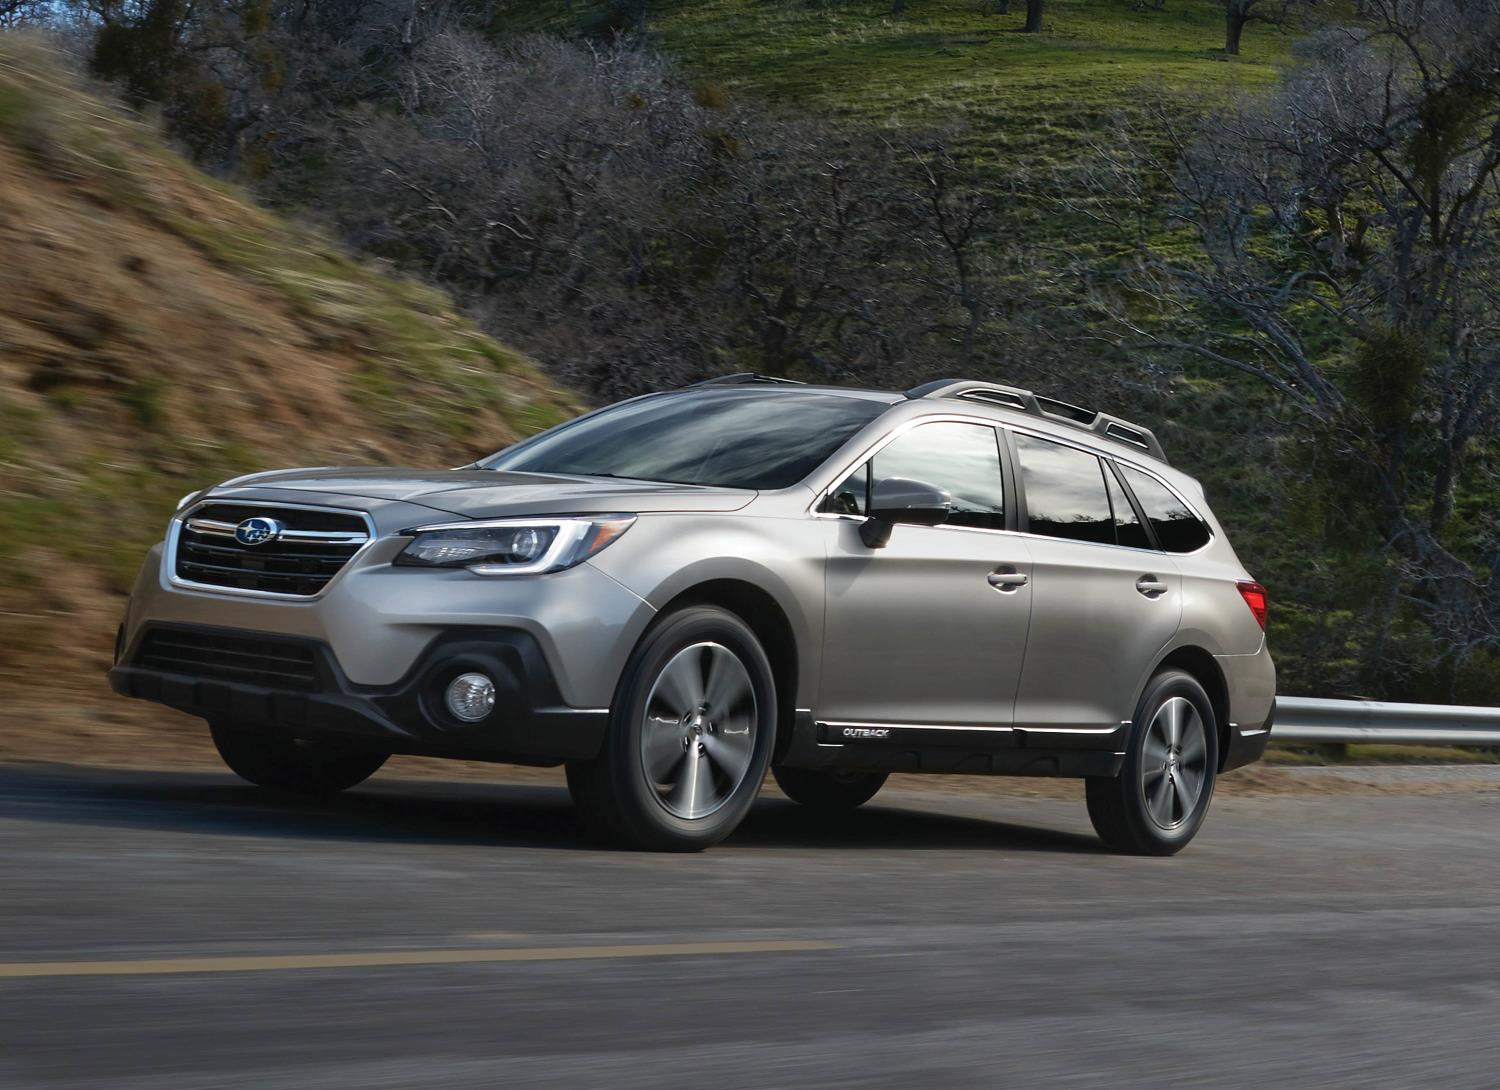 Subaru Outback, one of Subaru's top selling vehicles in calendar year 2017